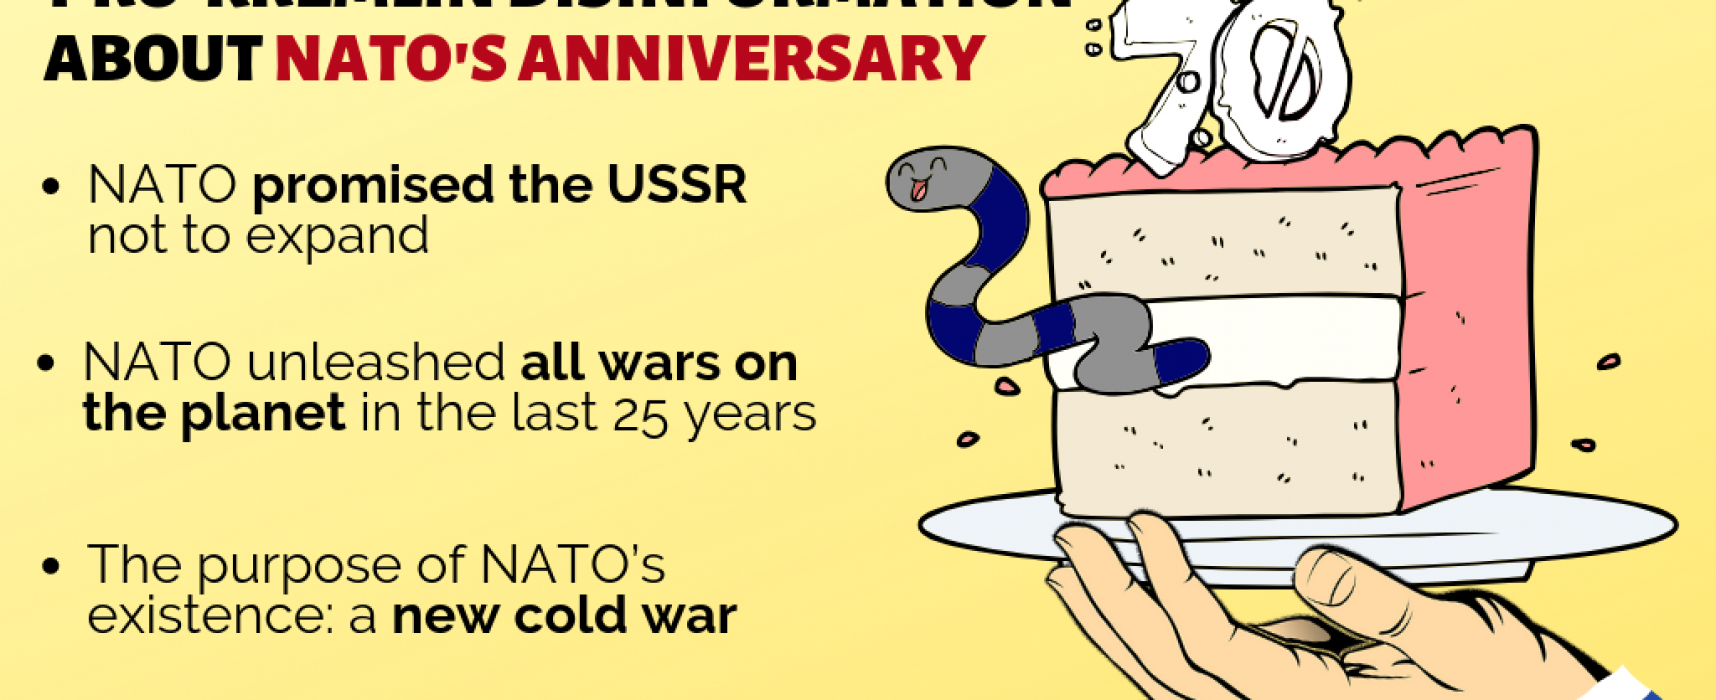 NATO Special: Global dictatorship and unleashing all the wars of the last 25 years